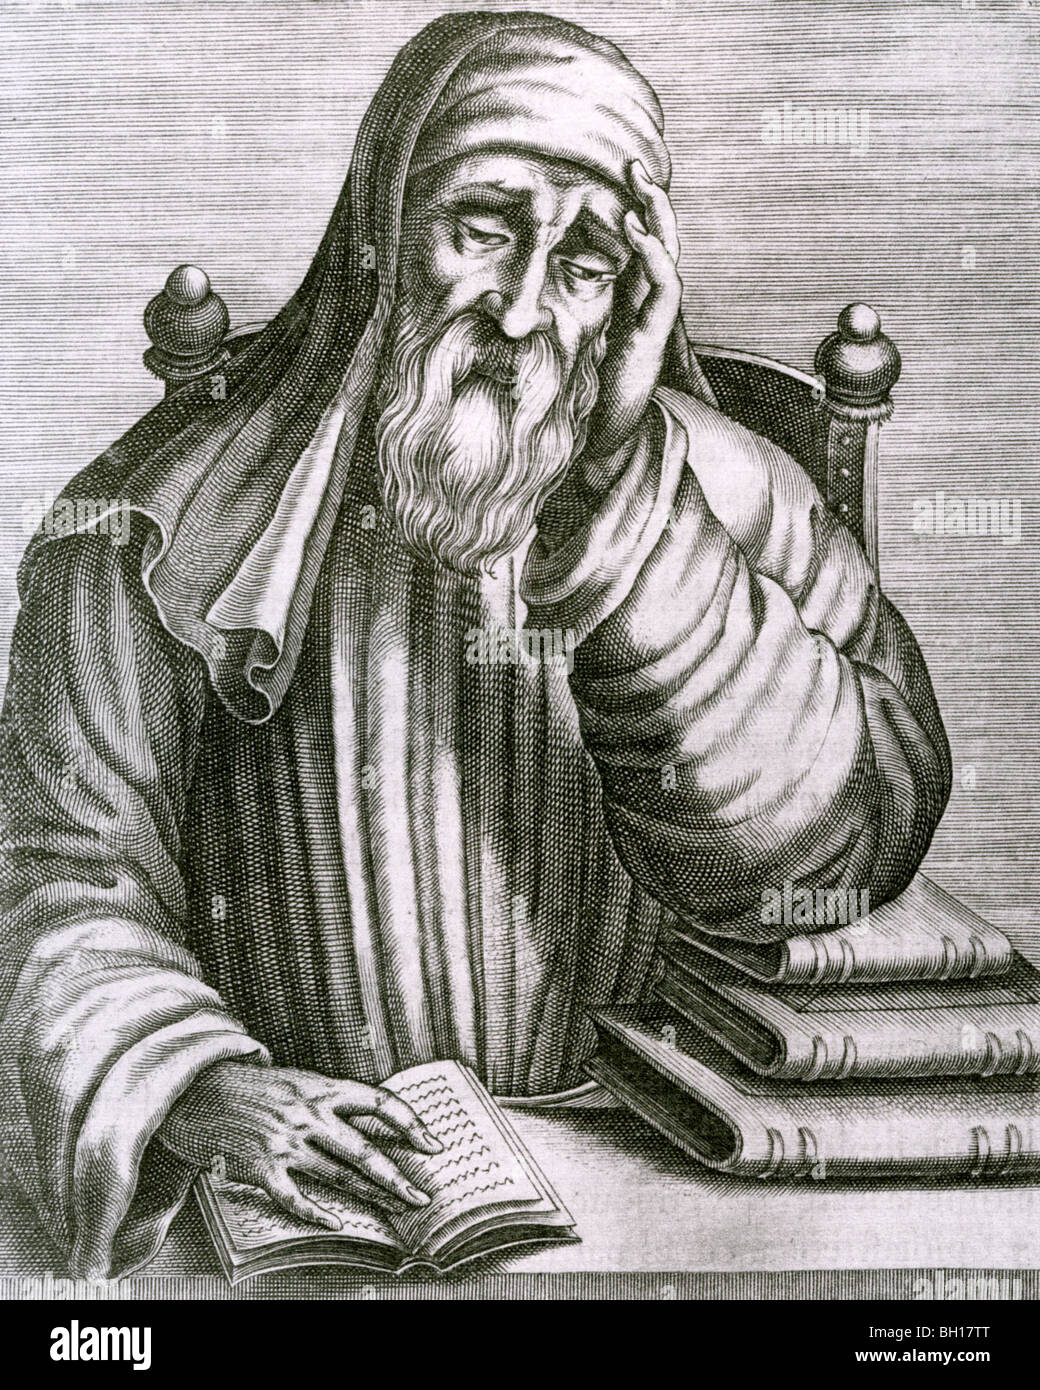 PLUTARCH  - Greek historian and philosopher (about 46-120 AD) in an 18th century engraving - Stock Image